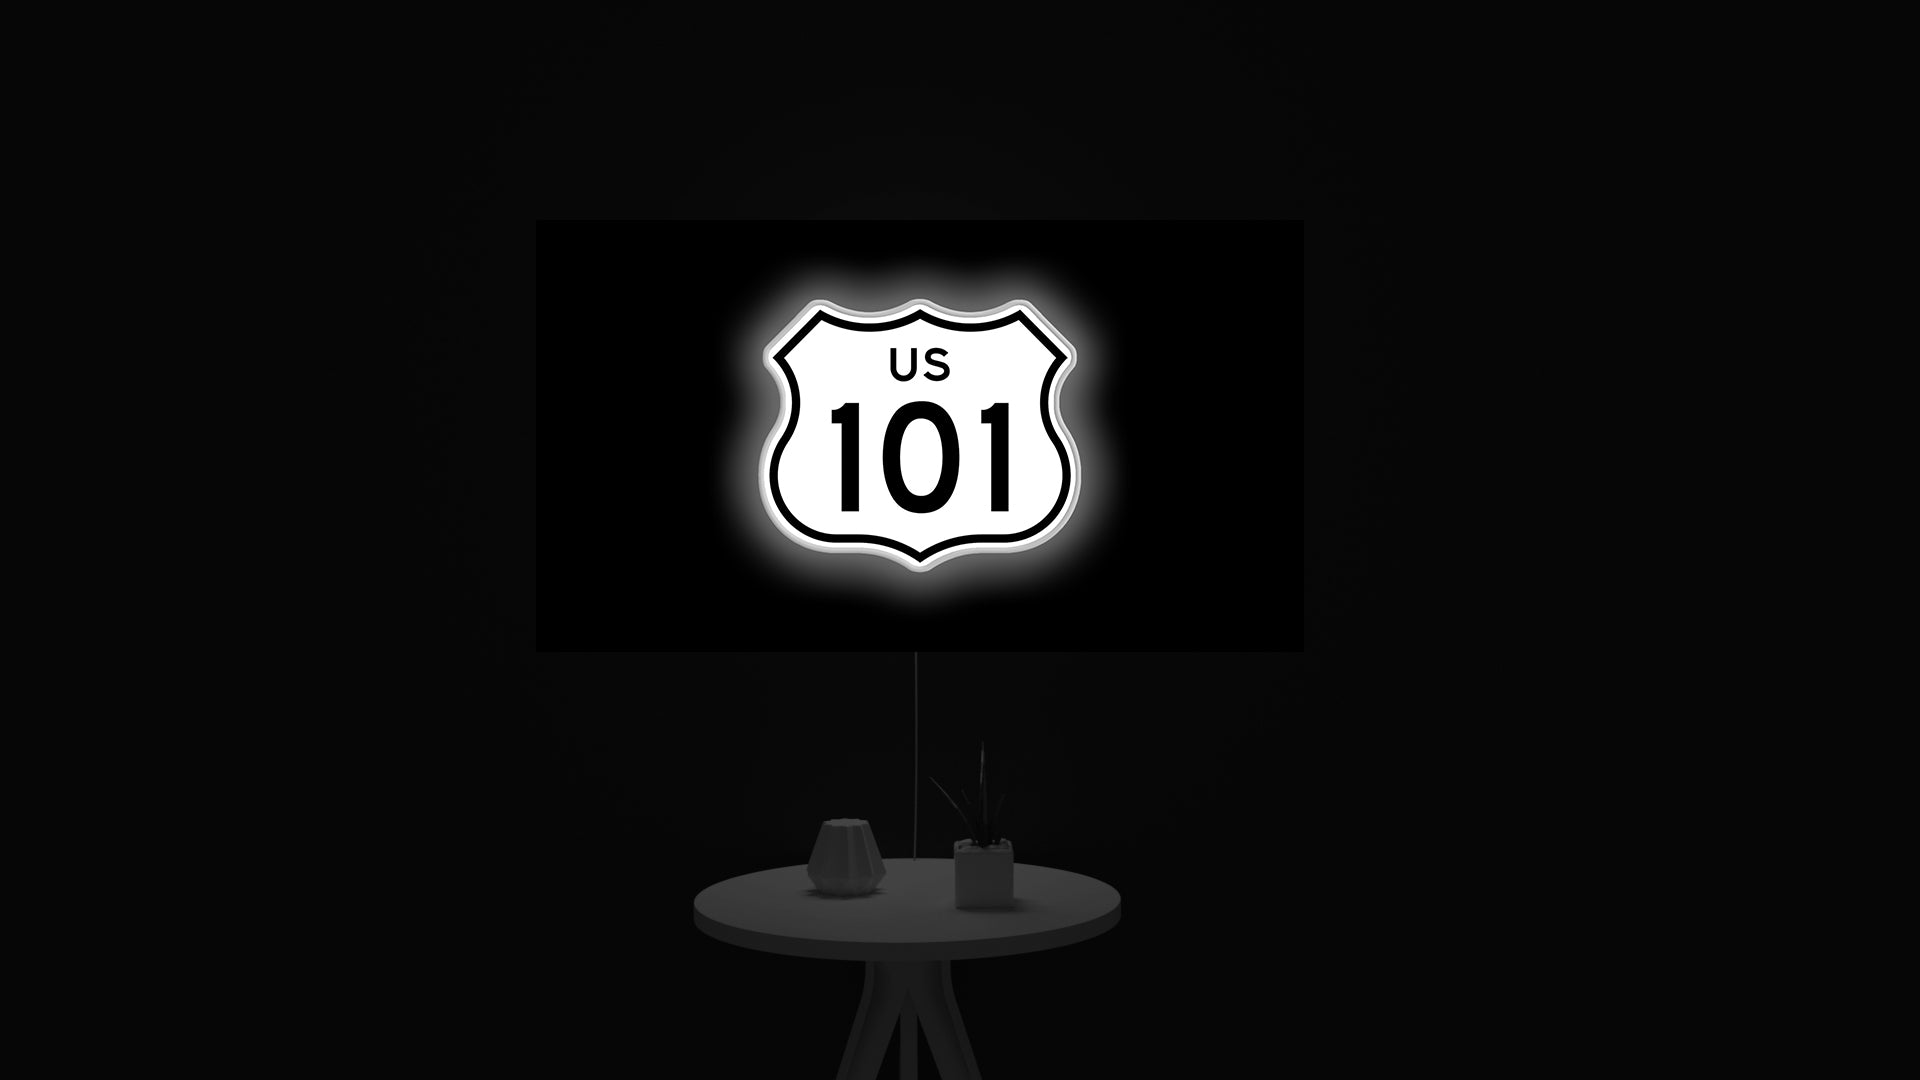 US Route 101 led light sign